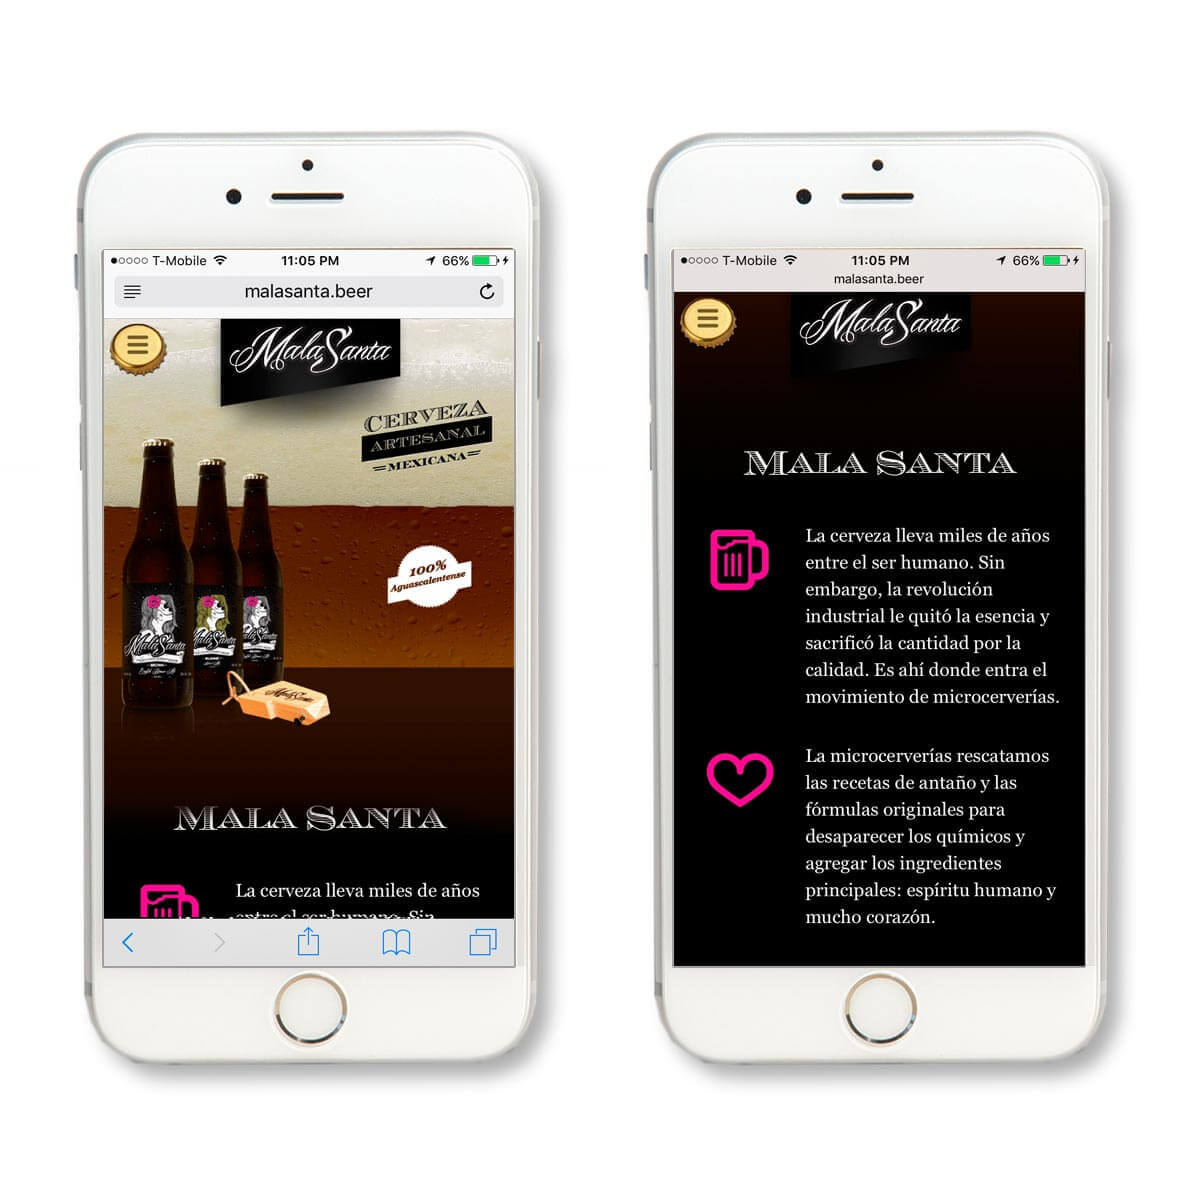 Mala Santa Cerveza website screenshots